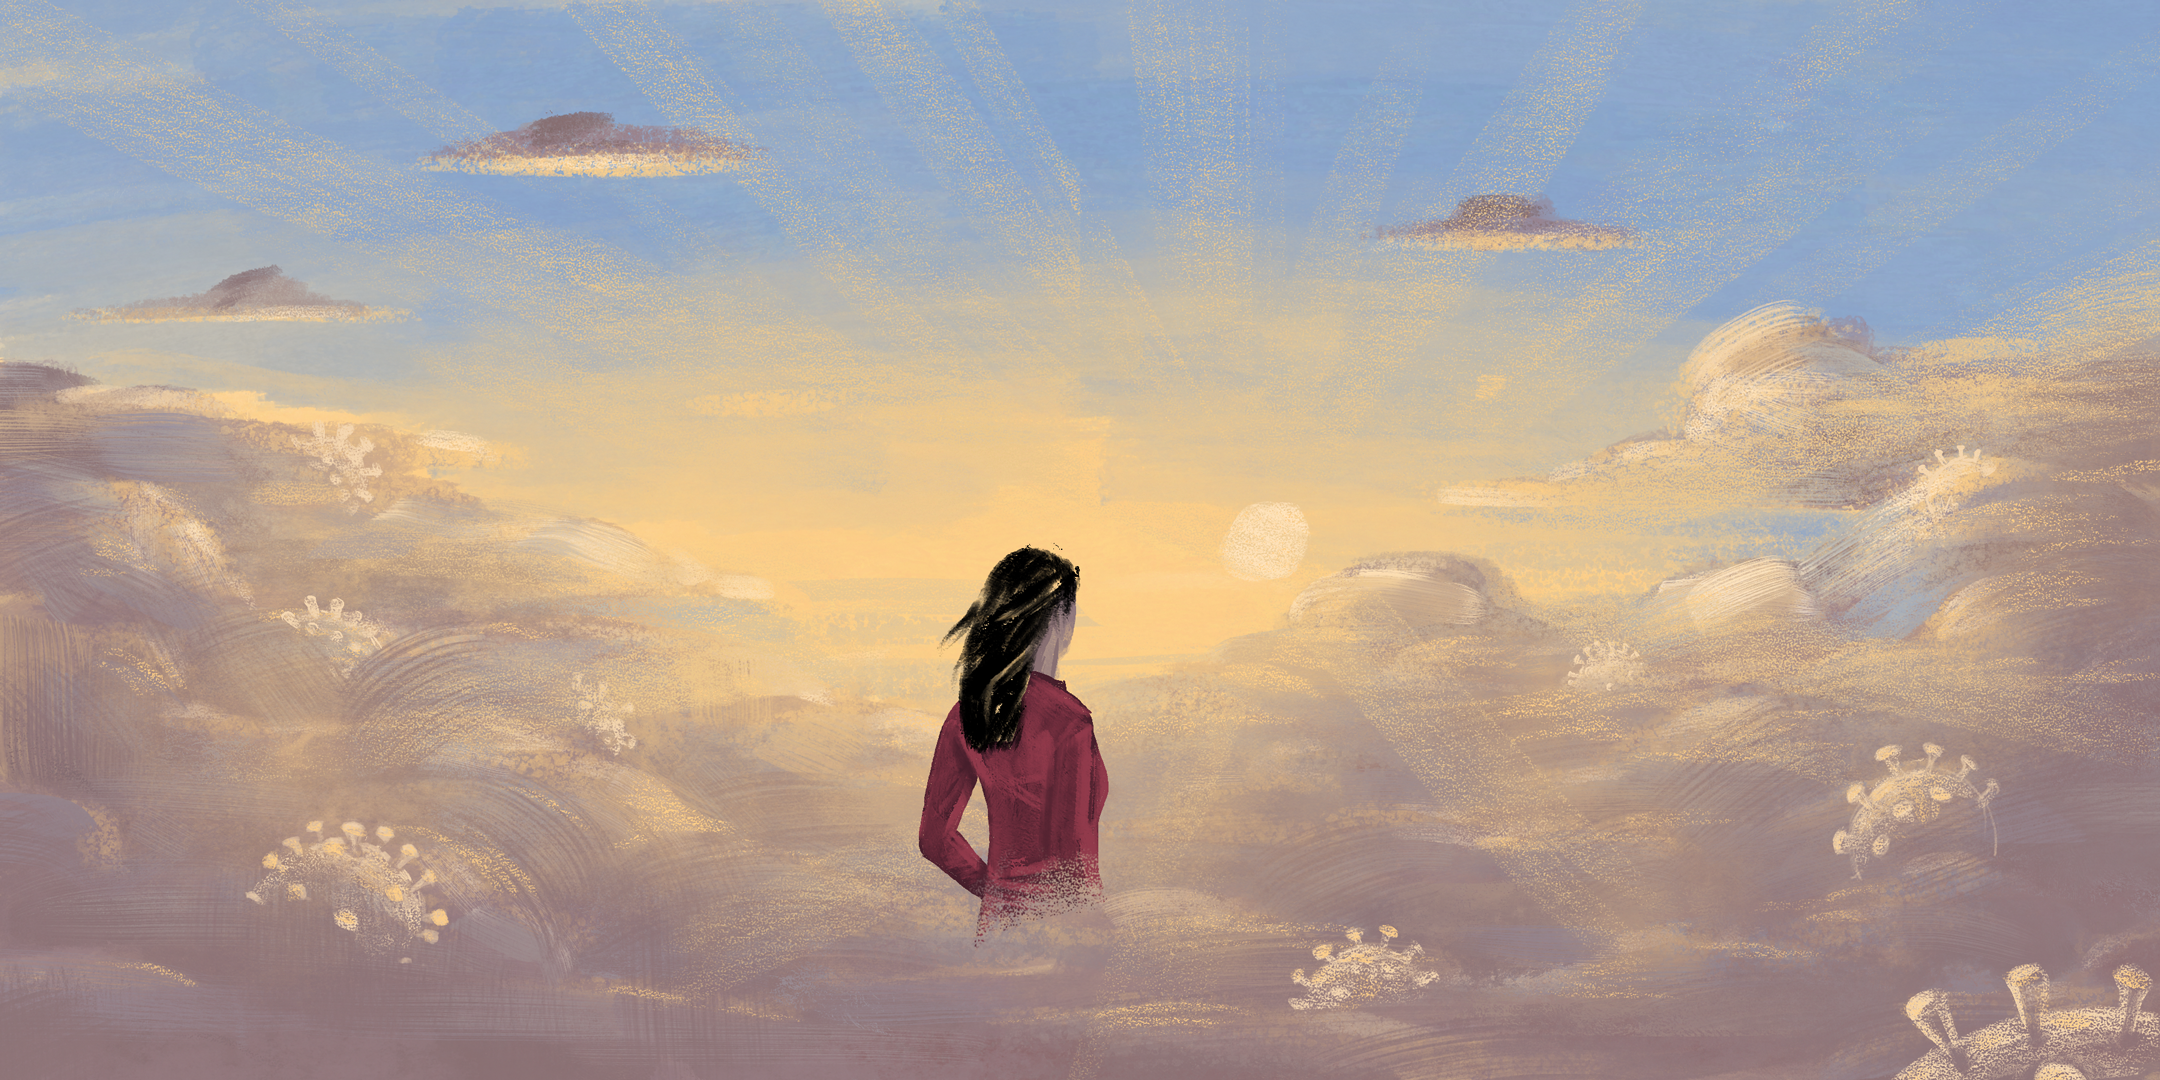 Woman standing in clouds, looking out over horizon